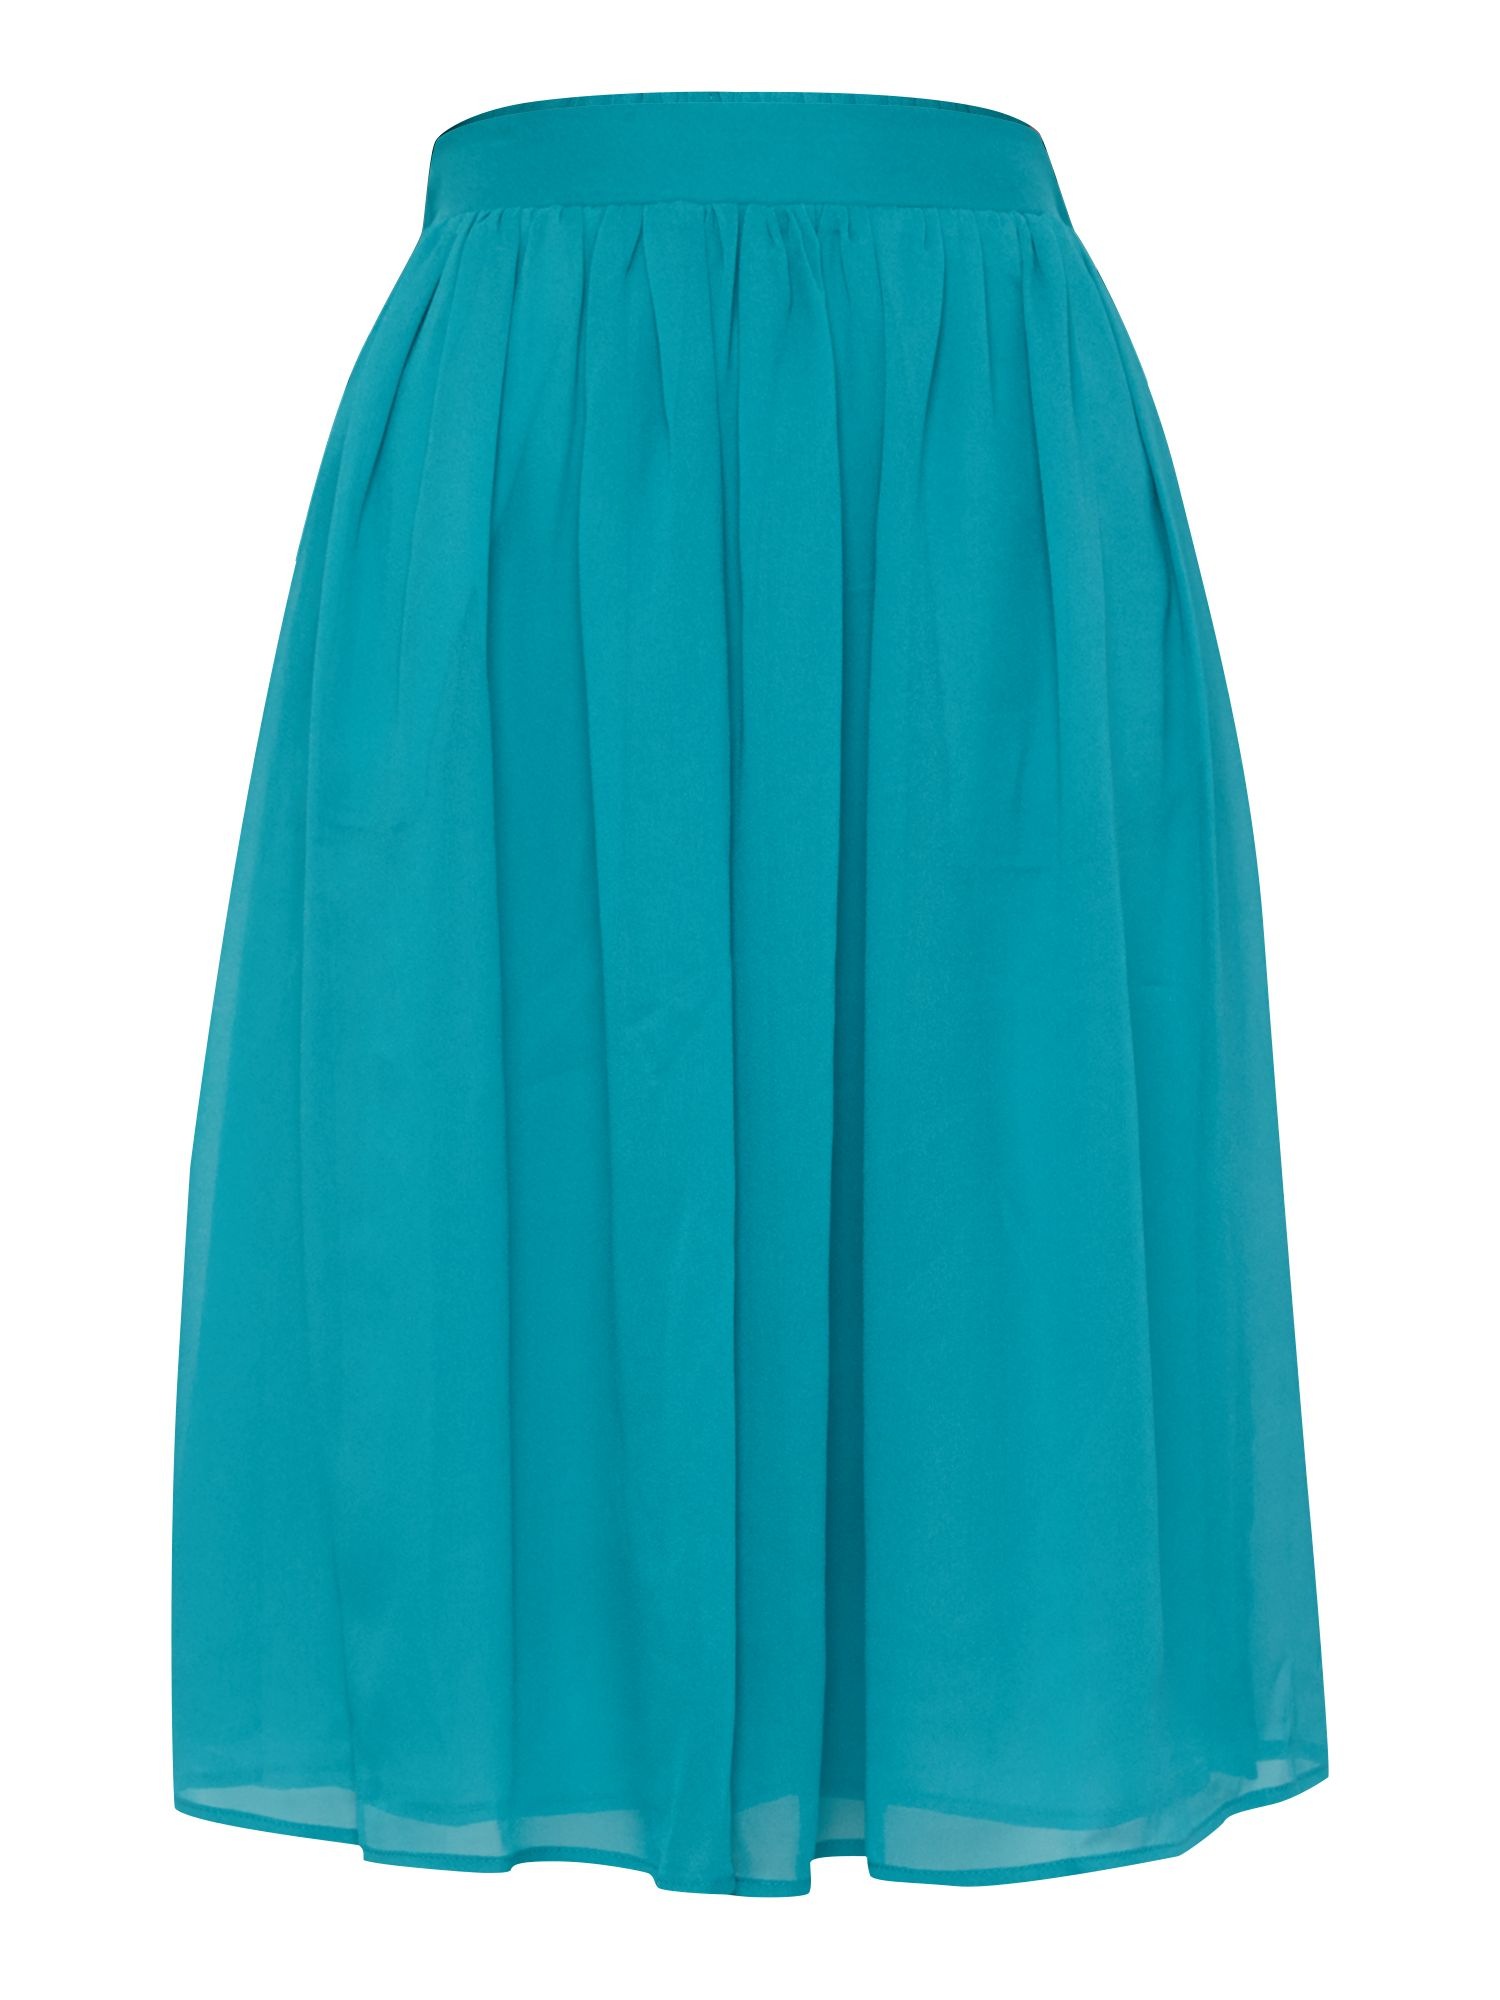 y a s pleated midi skirt in teal green